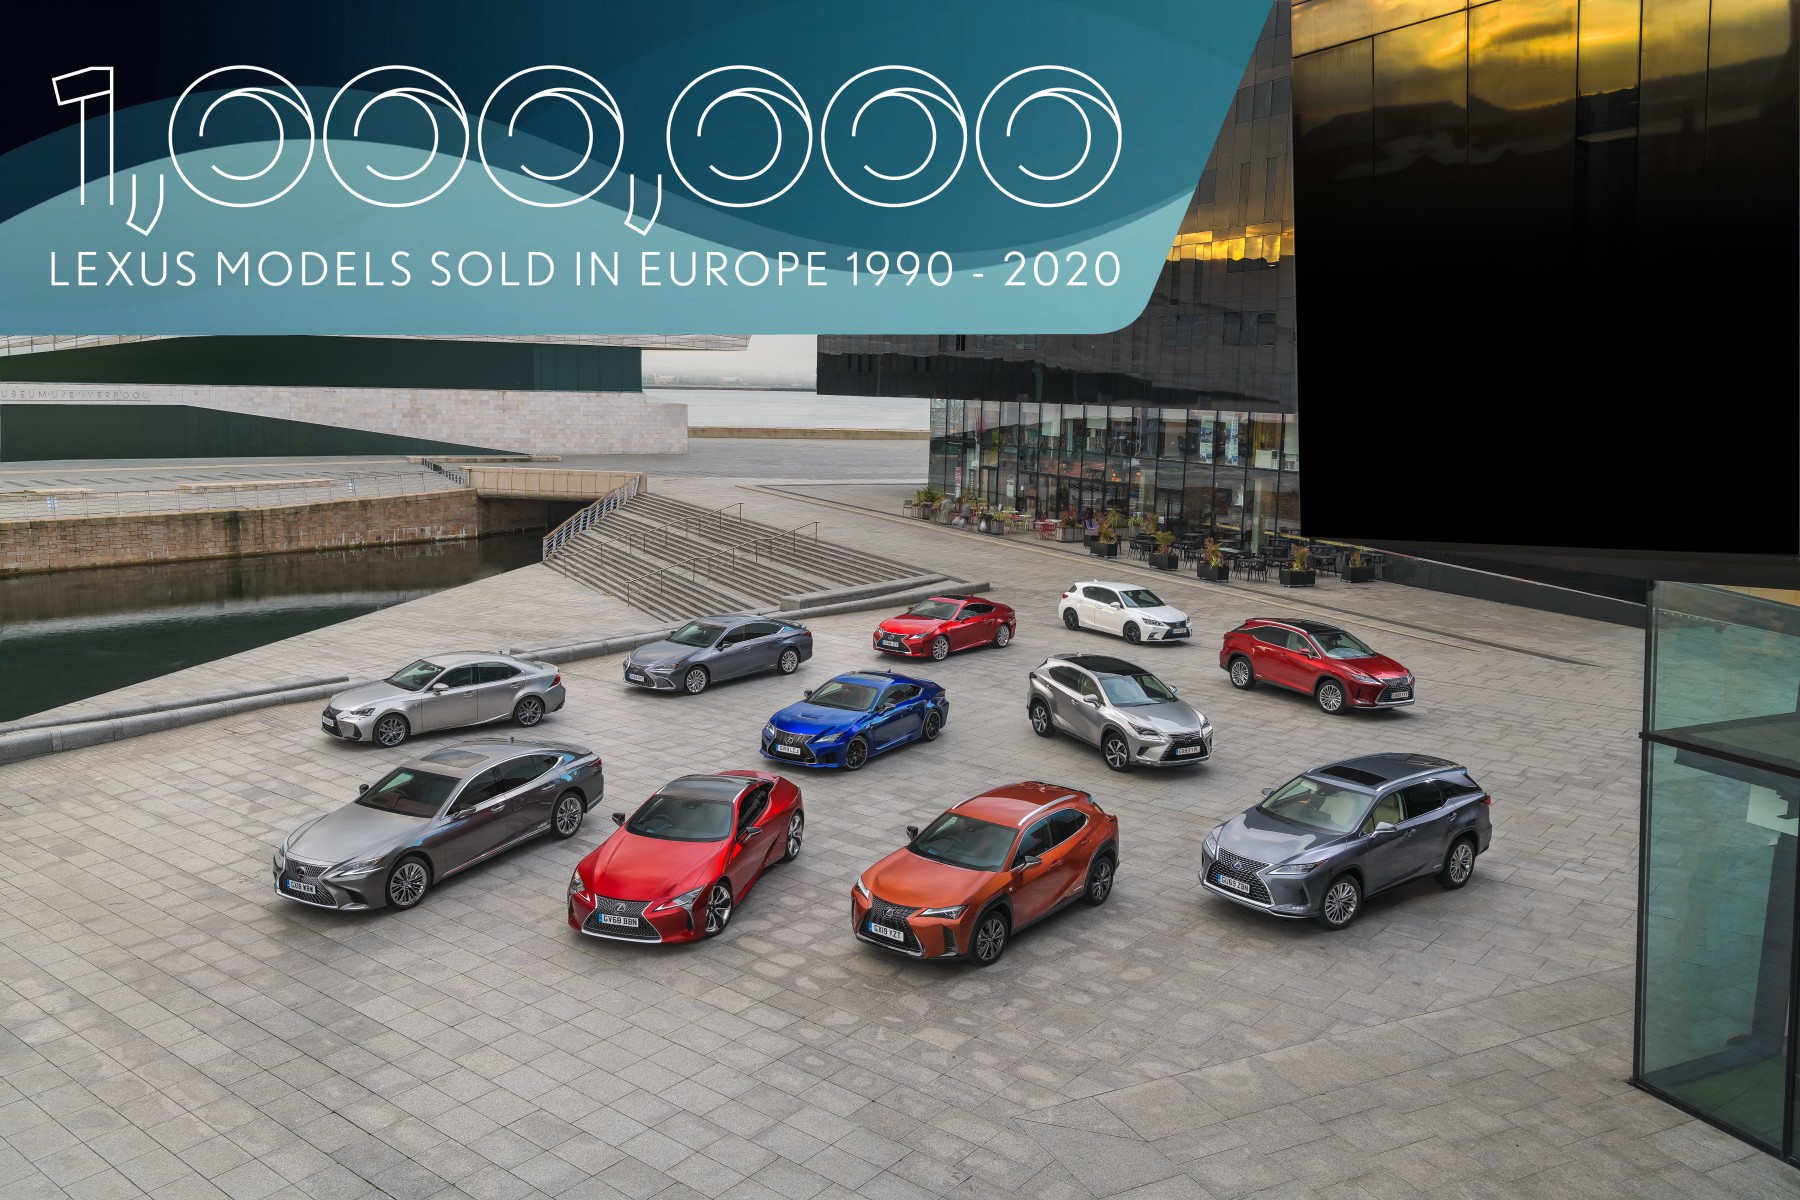 LEXUS RECORDS ONE MILLION SALES IN EUROPE